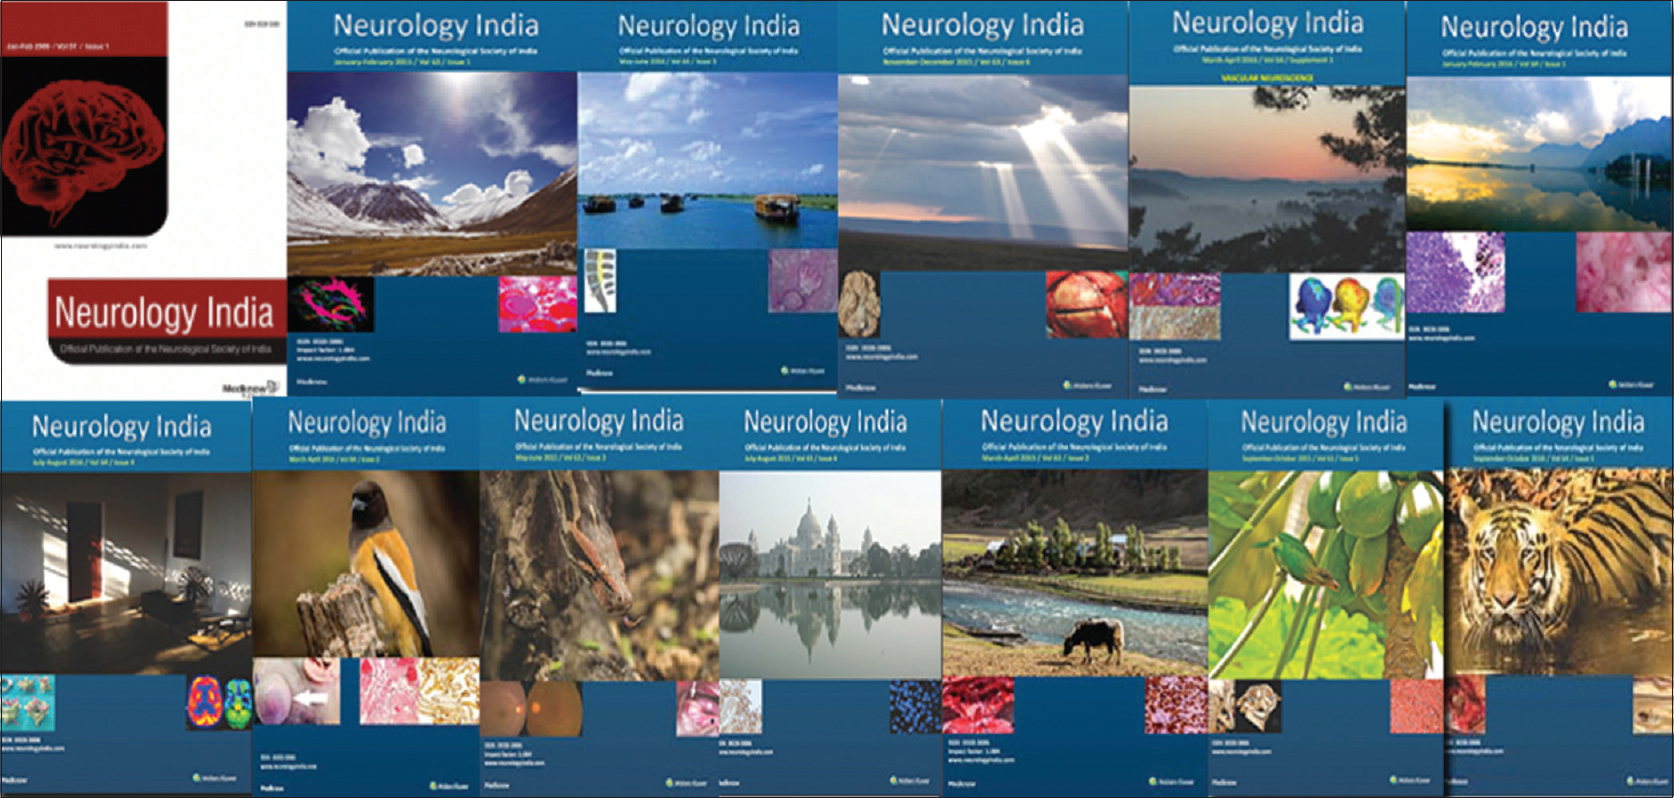 Figure 6: Neurology India: Official journal of the society catering to a multidisciplinary neuroscience readership